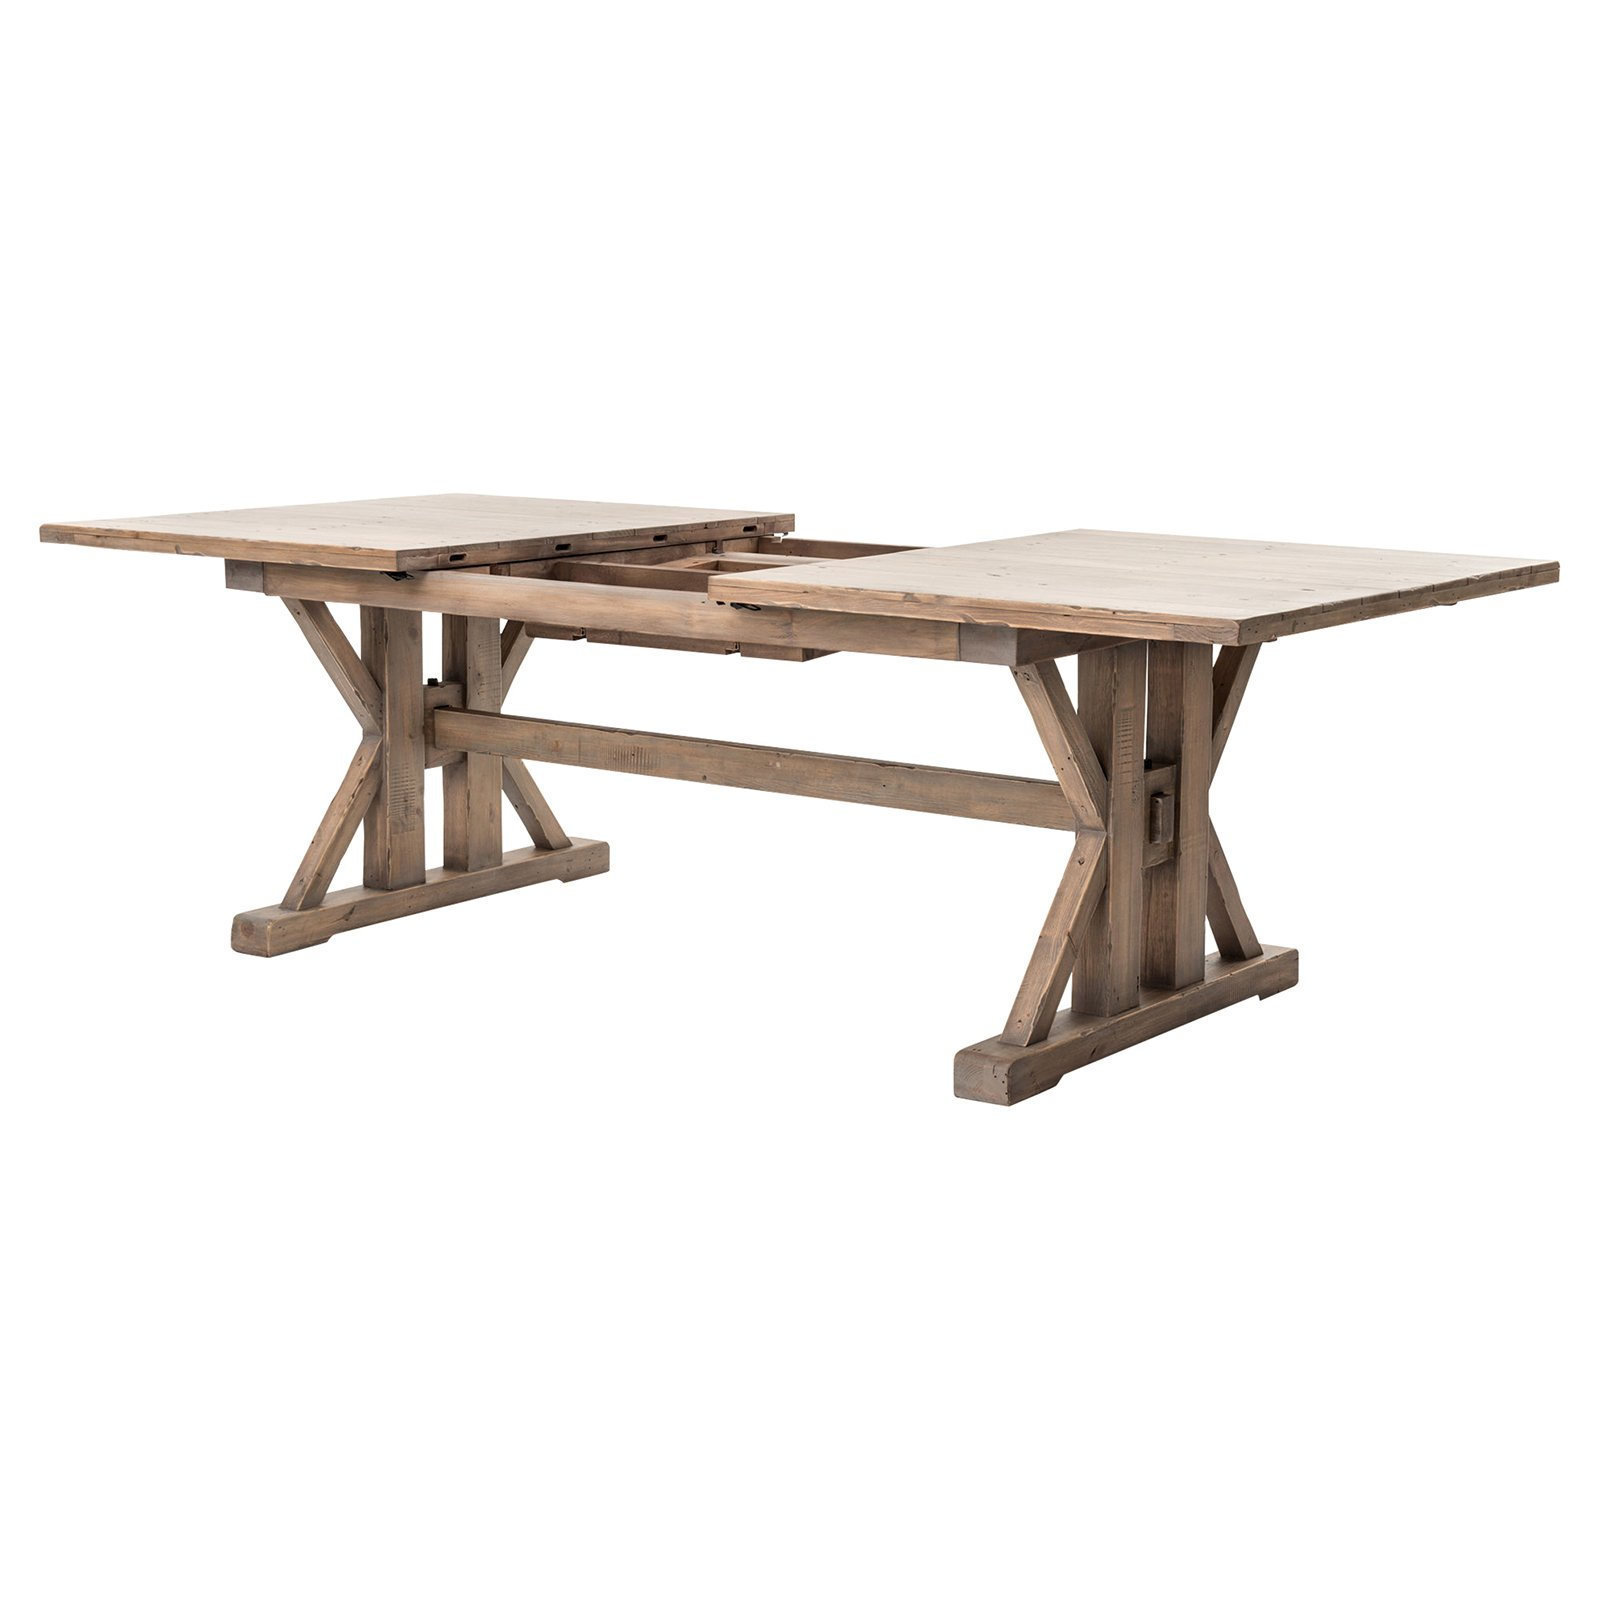 Lyle Lodge Reclaimed Pine Adjustable Dining Table